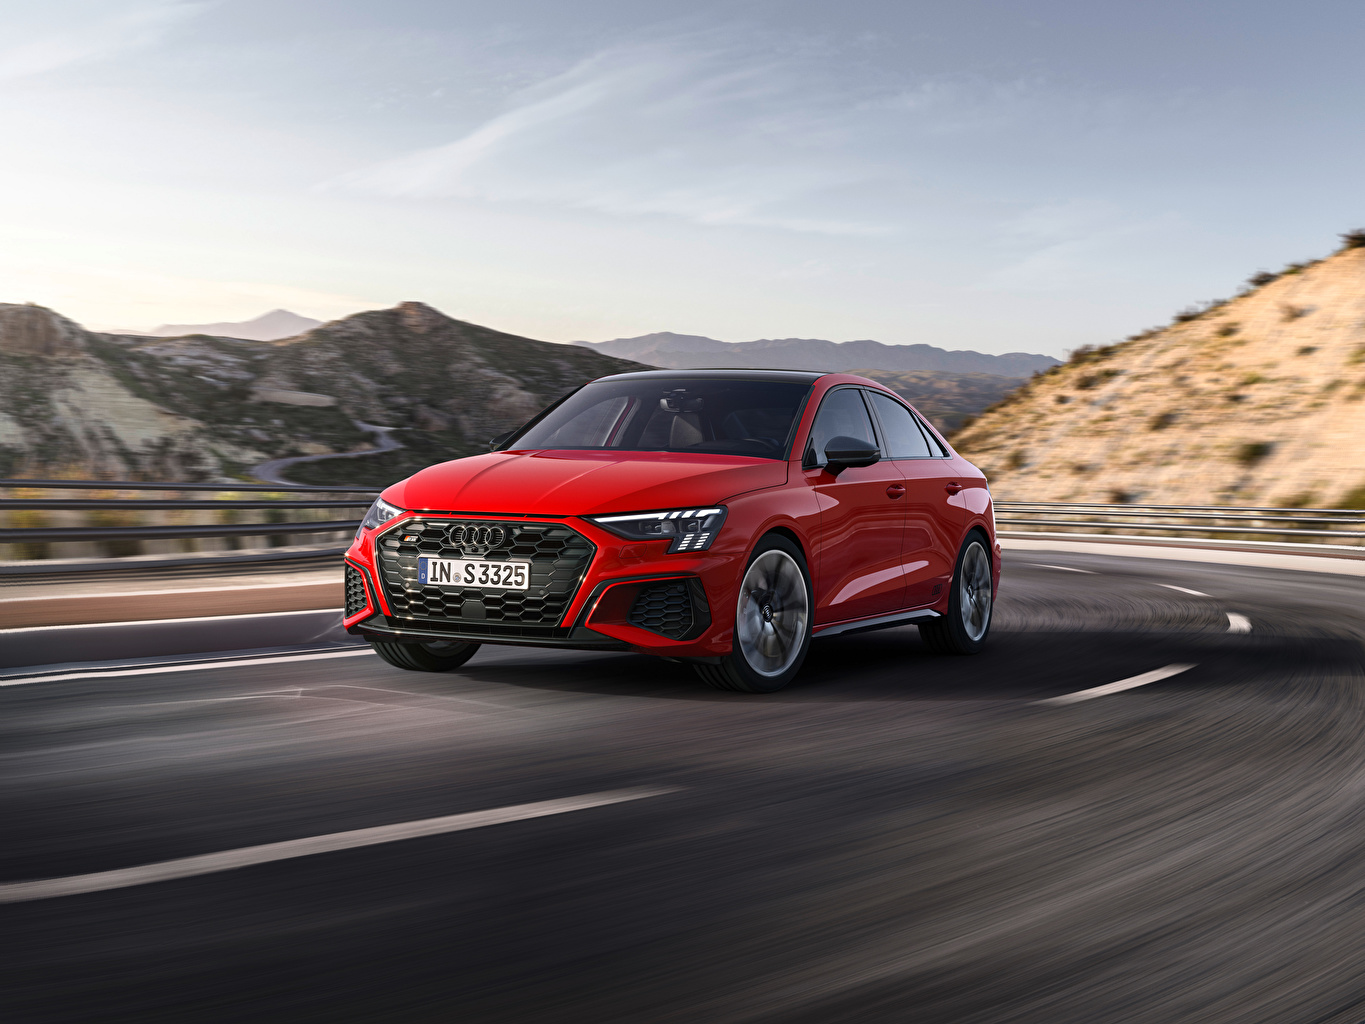 Desktop Wallpapers Audi S3 Sedan, 2020 Red Roads at speed Metallic automobile moving riding Motion driving Cars auto